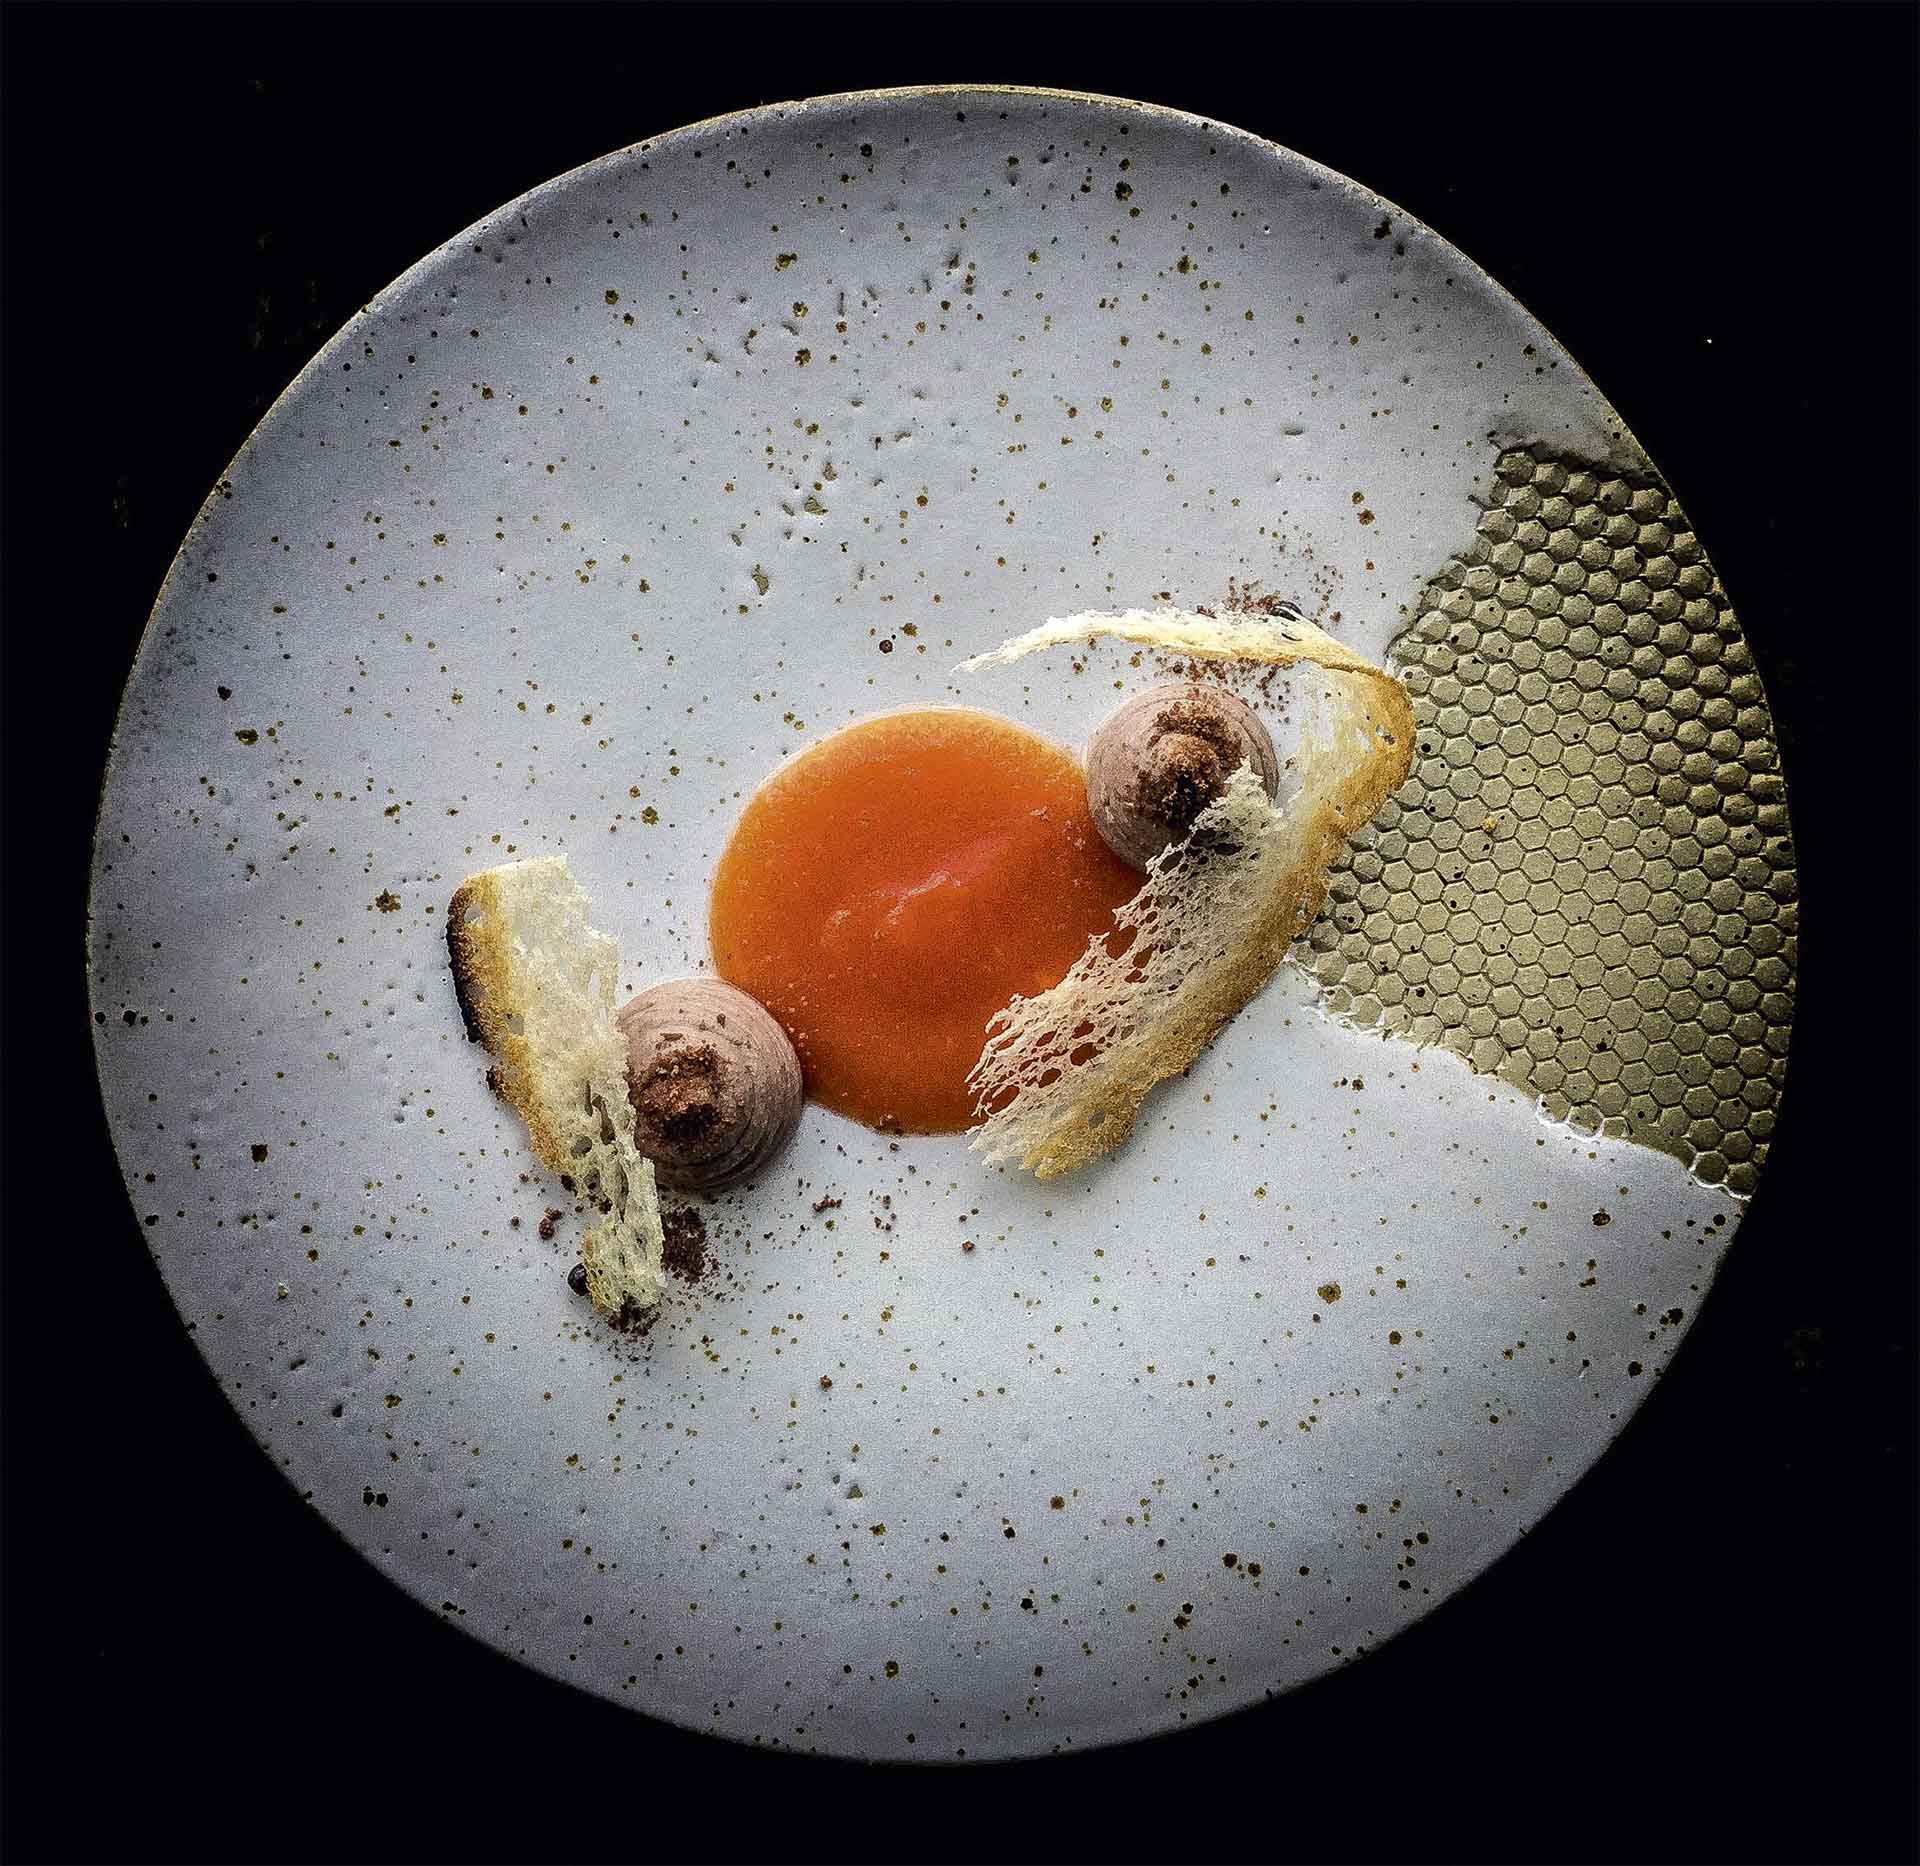 Cocoa is partnered with papaya and foie gras by Luca Rosati ©Luca Rosati | Story on a Plate, Gestalten 2019